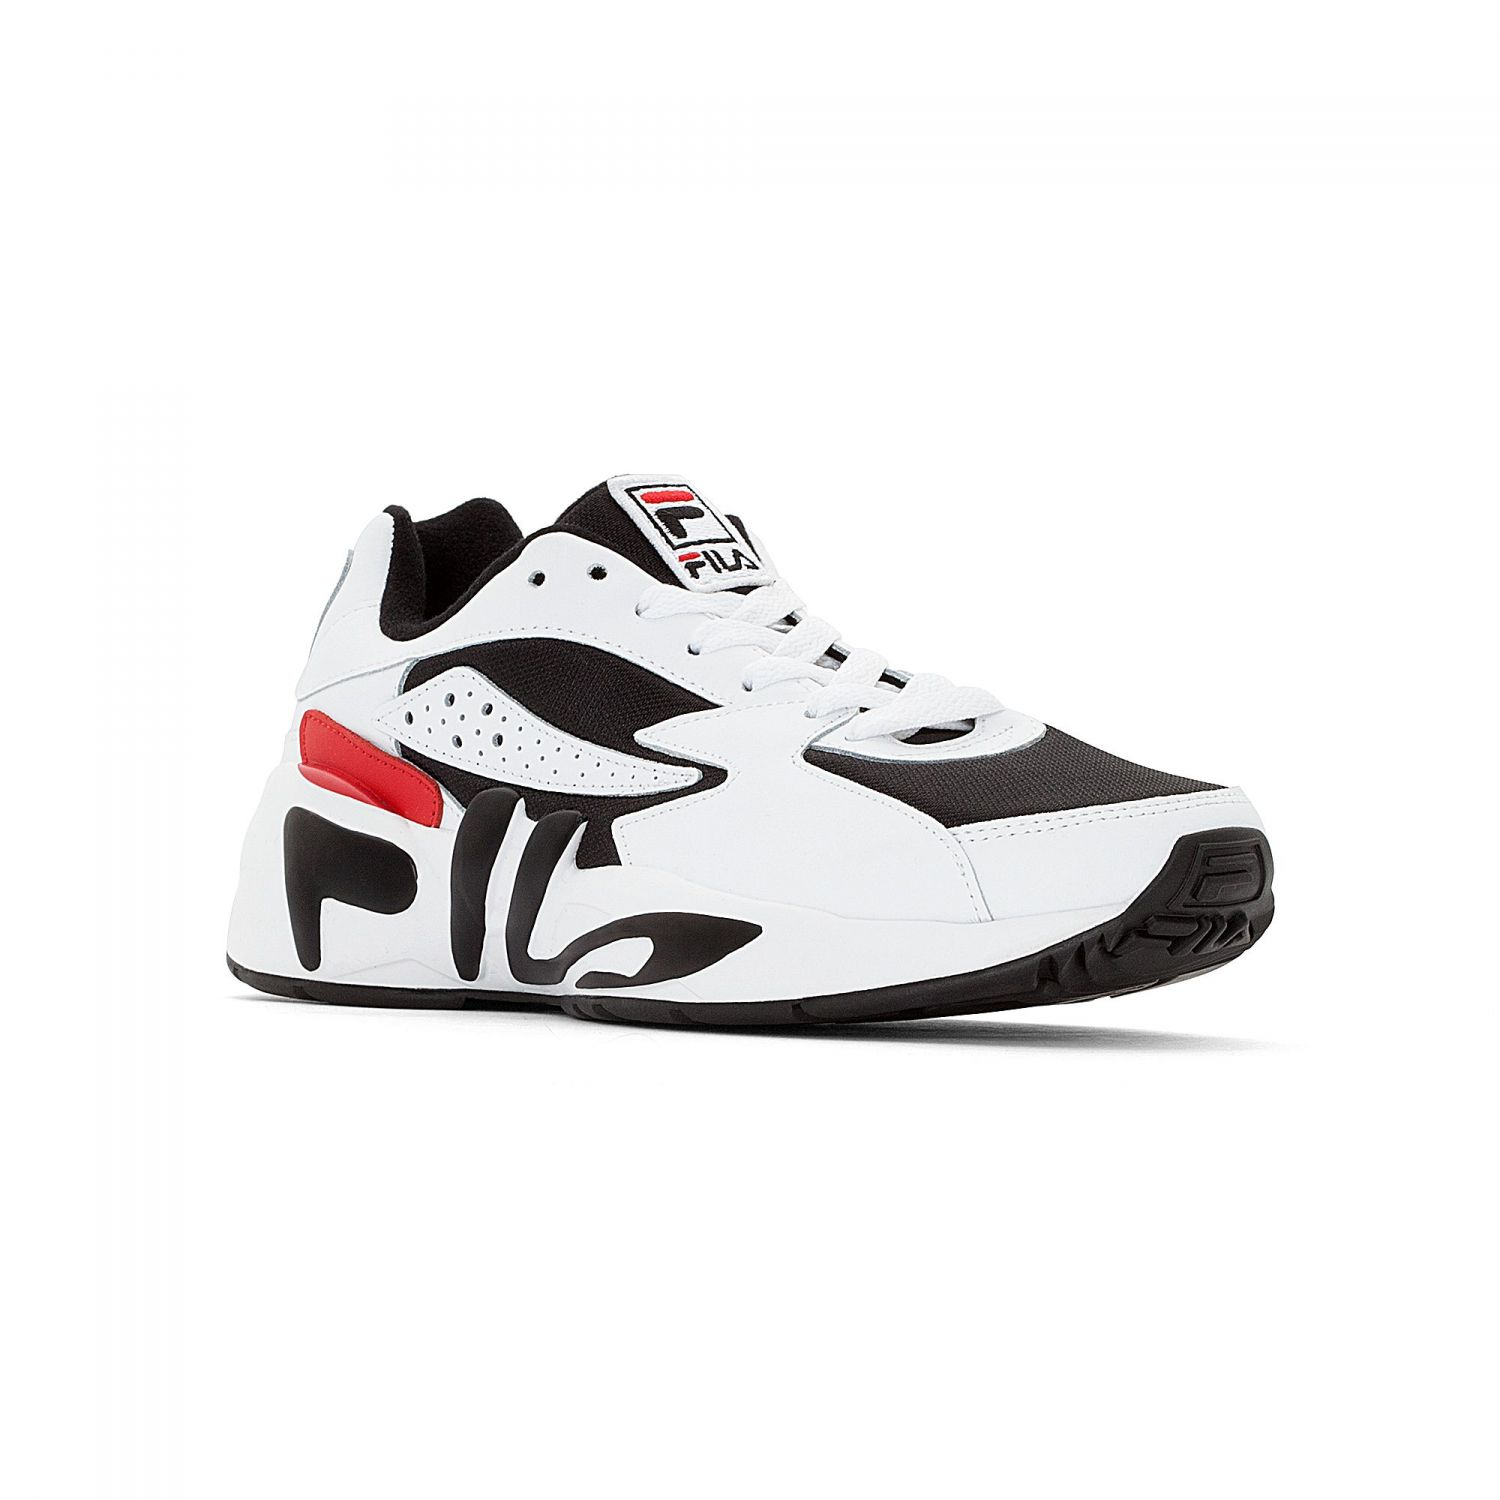 faafa69fca1f Fila - Mindblower Men white-black-red - 000142016723...